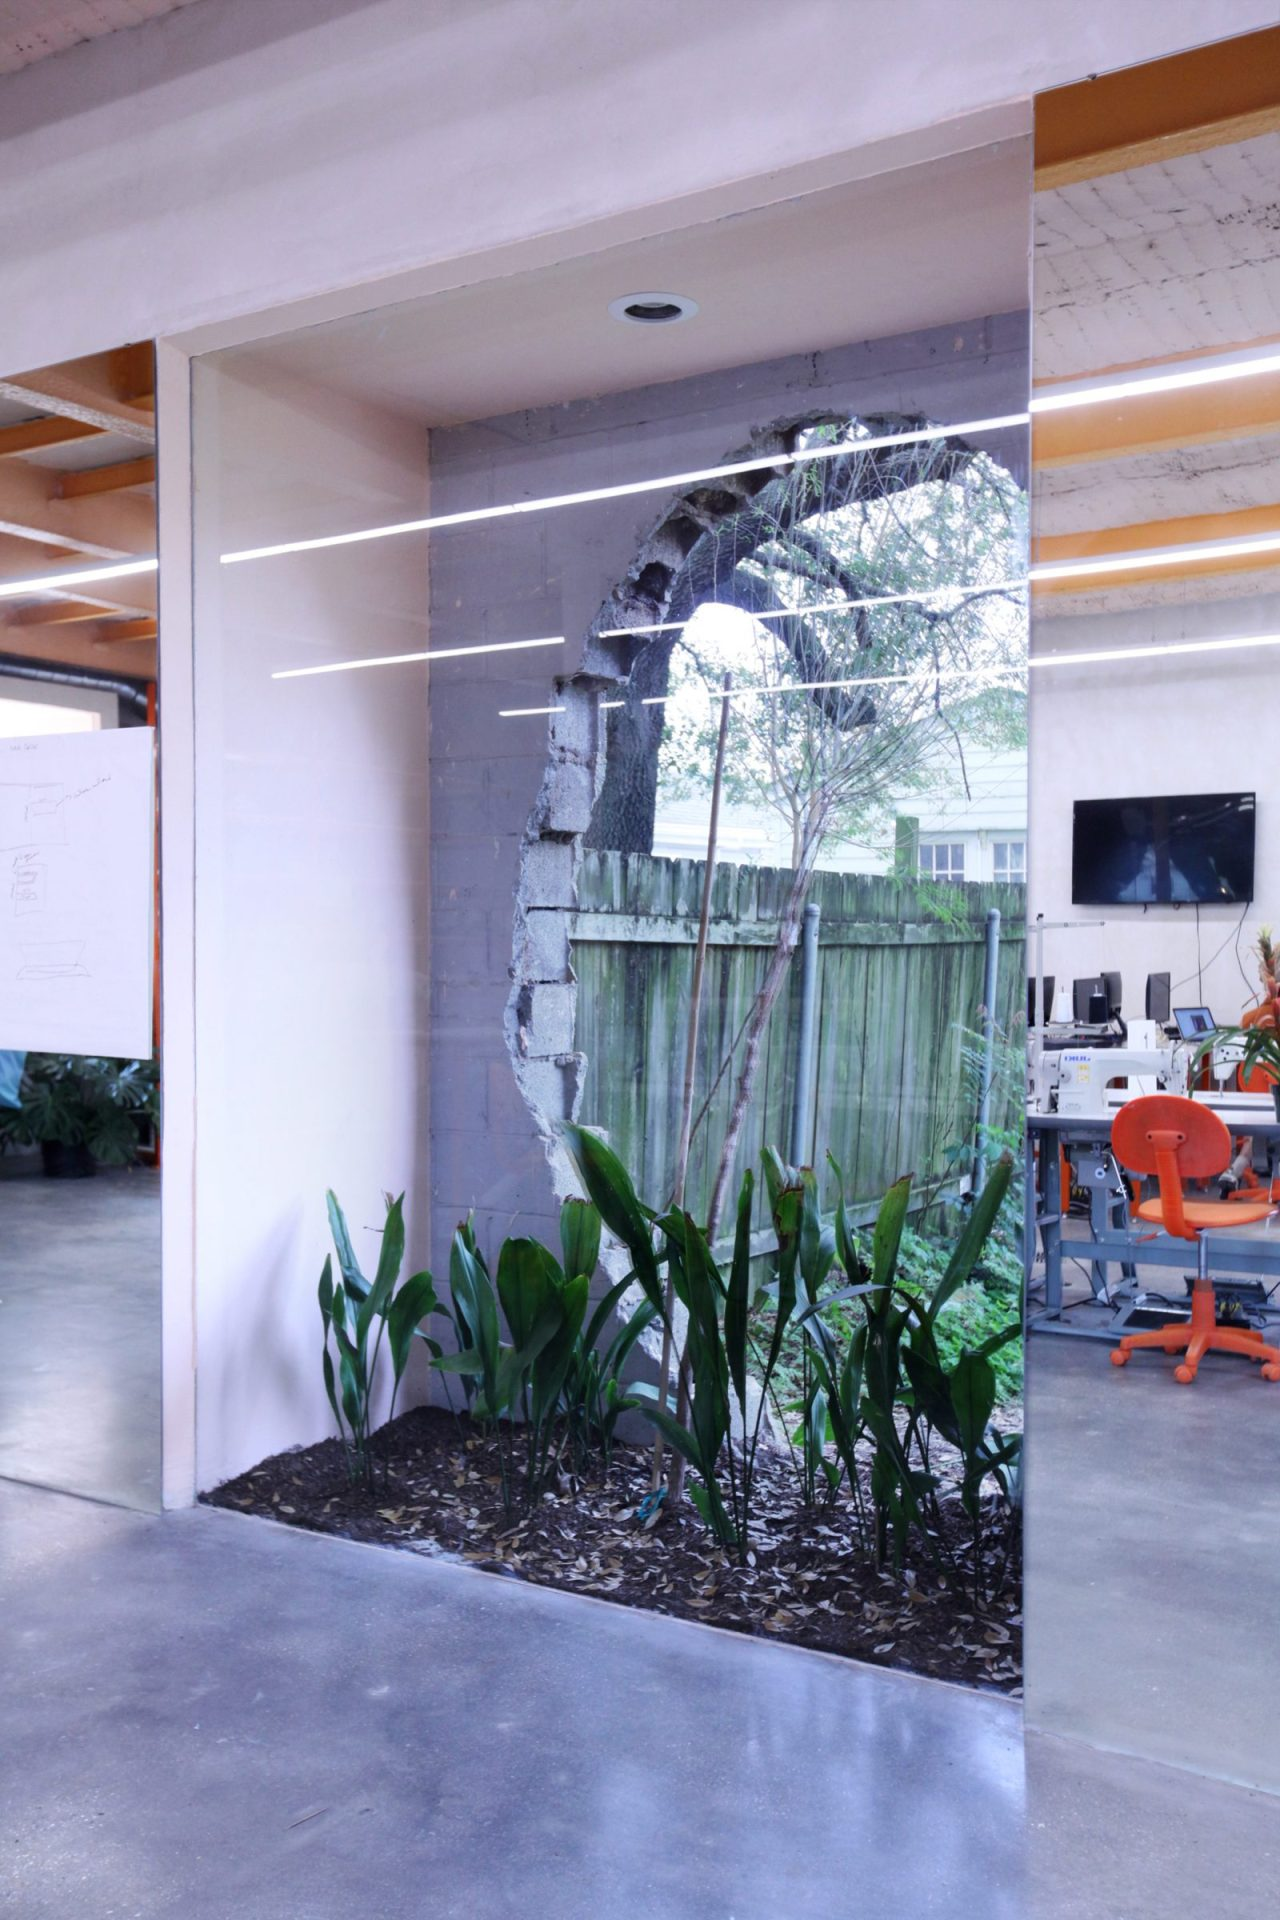 A garden sits between an inner glass pane and an outer window built to look as if it was punched in, at the Material Institute in New Orleans. (Kelly Colley)